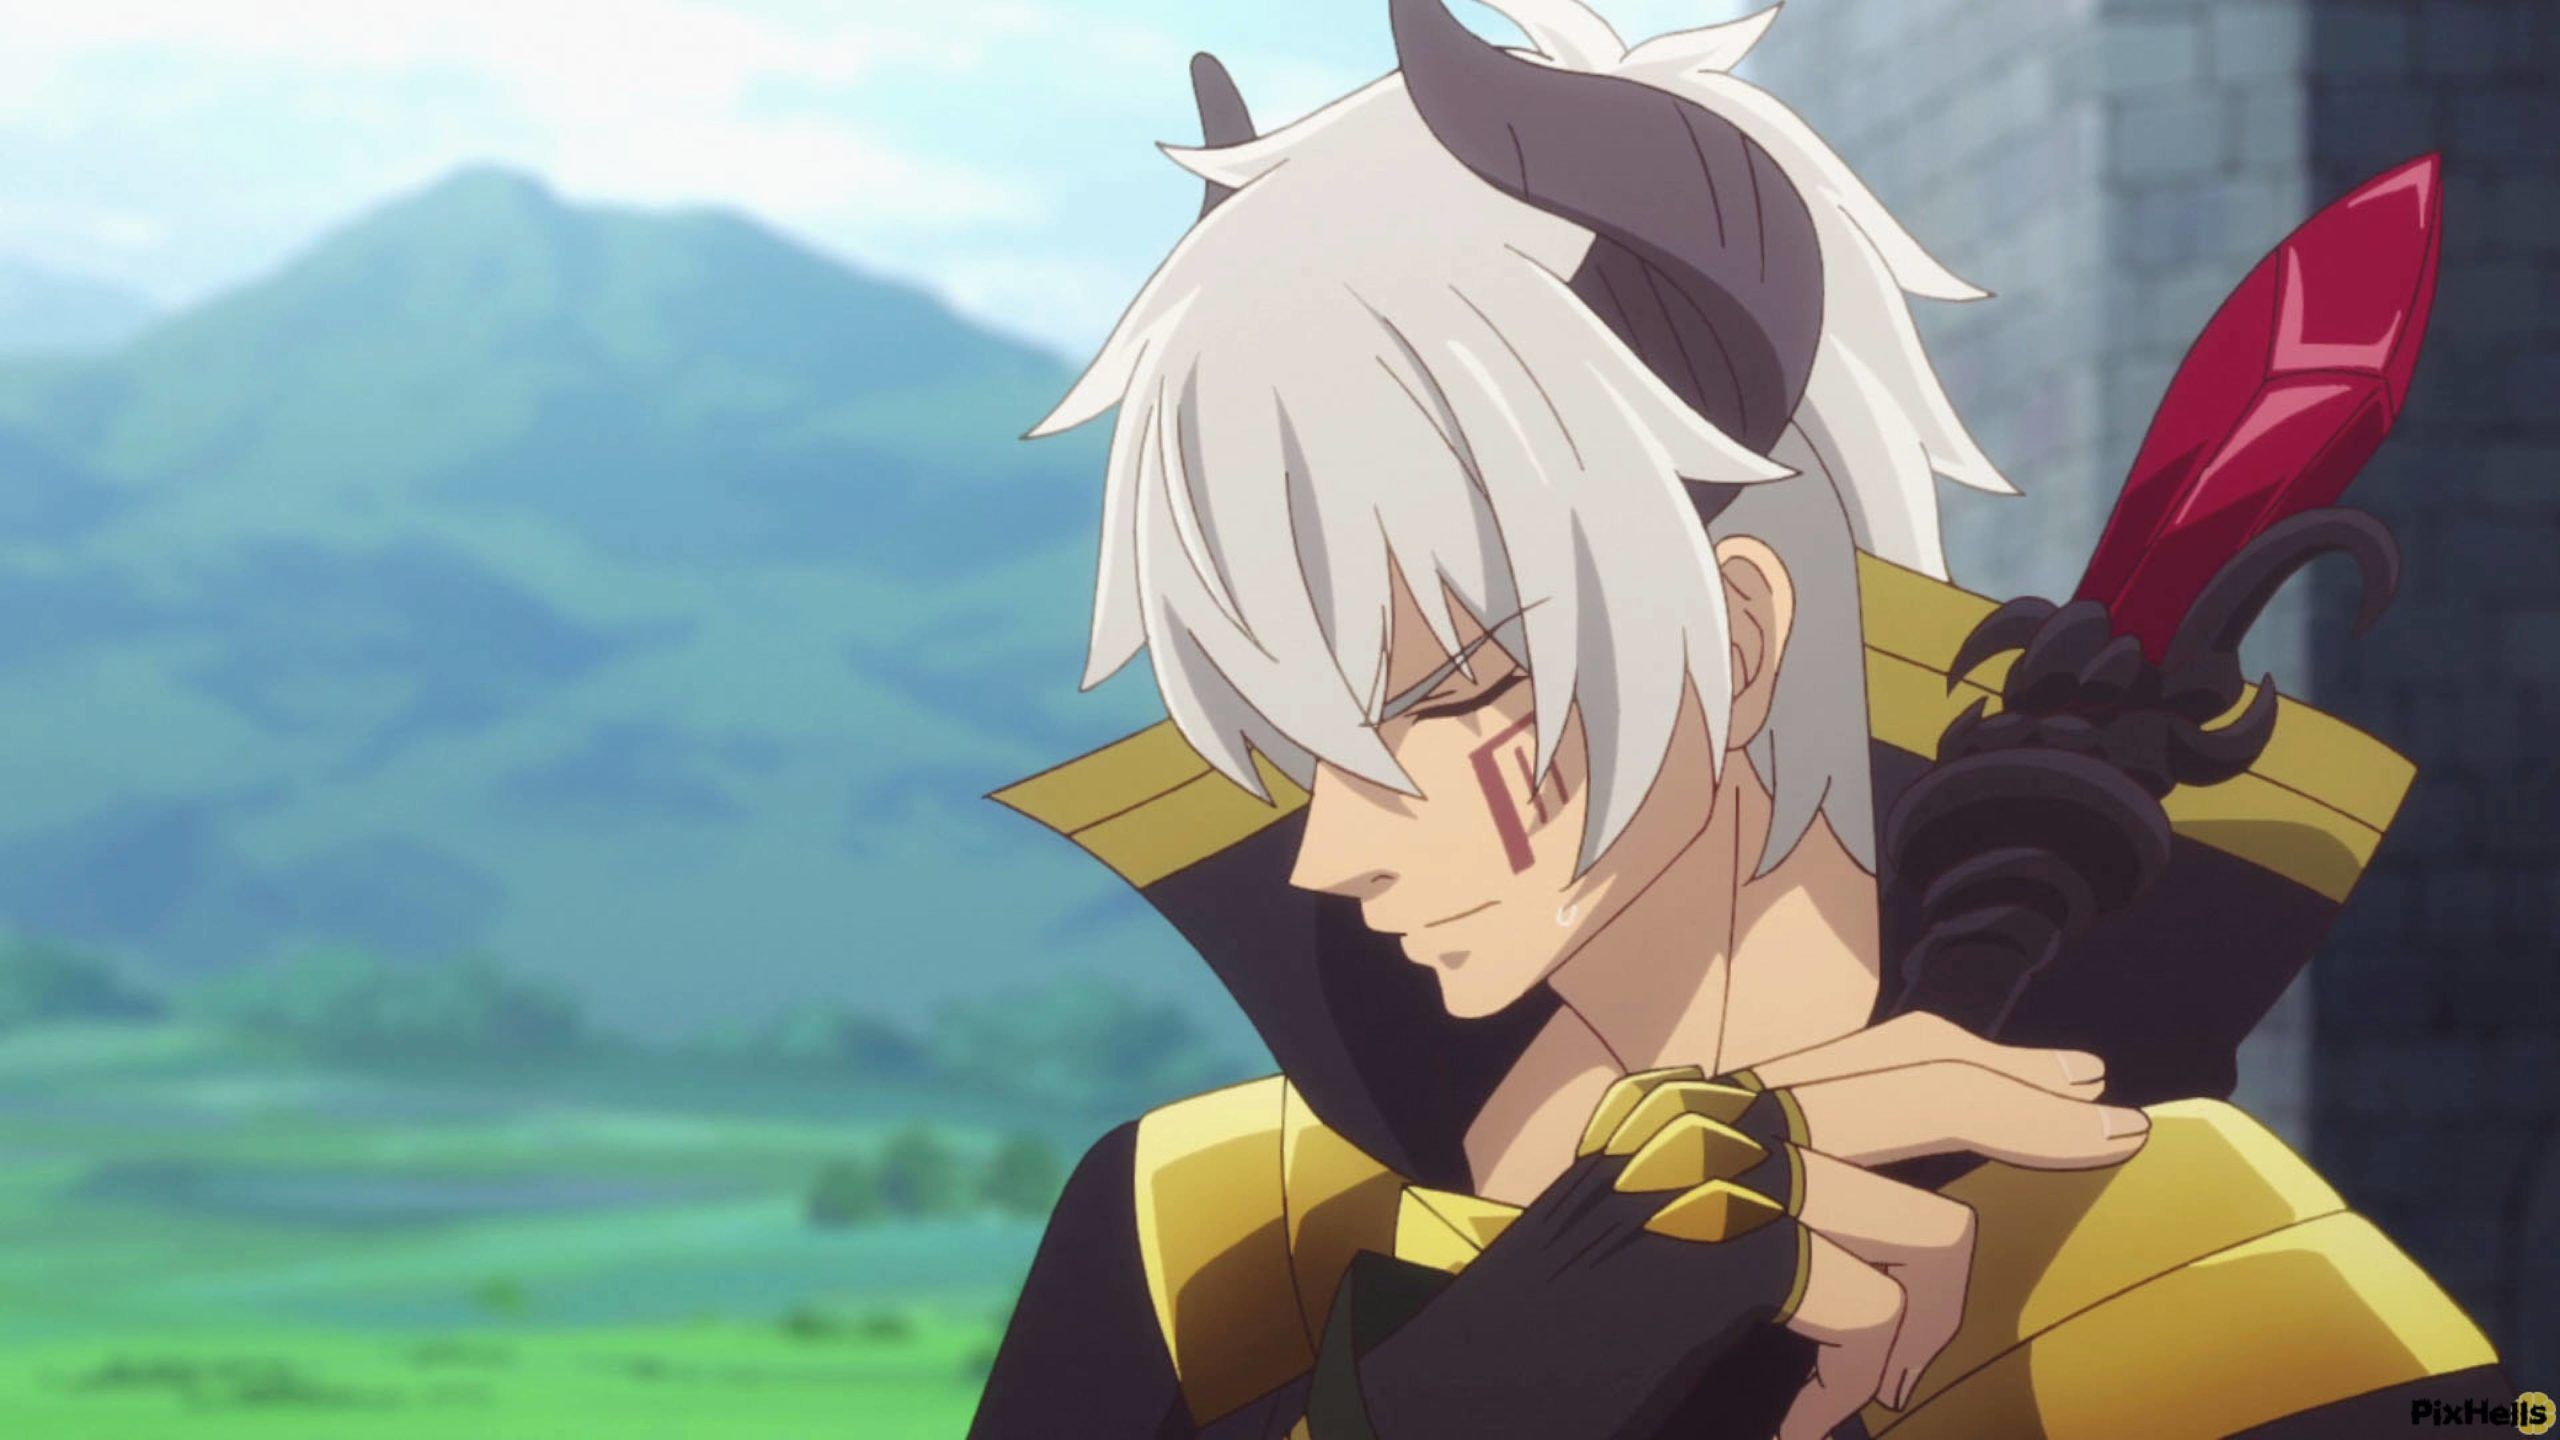 How Not To Summon A Demon Lord Anime Wallpapers Summoning Anime Wallpaper Anime